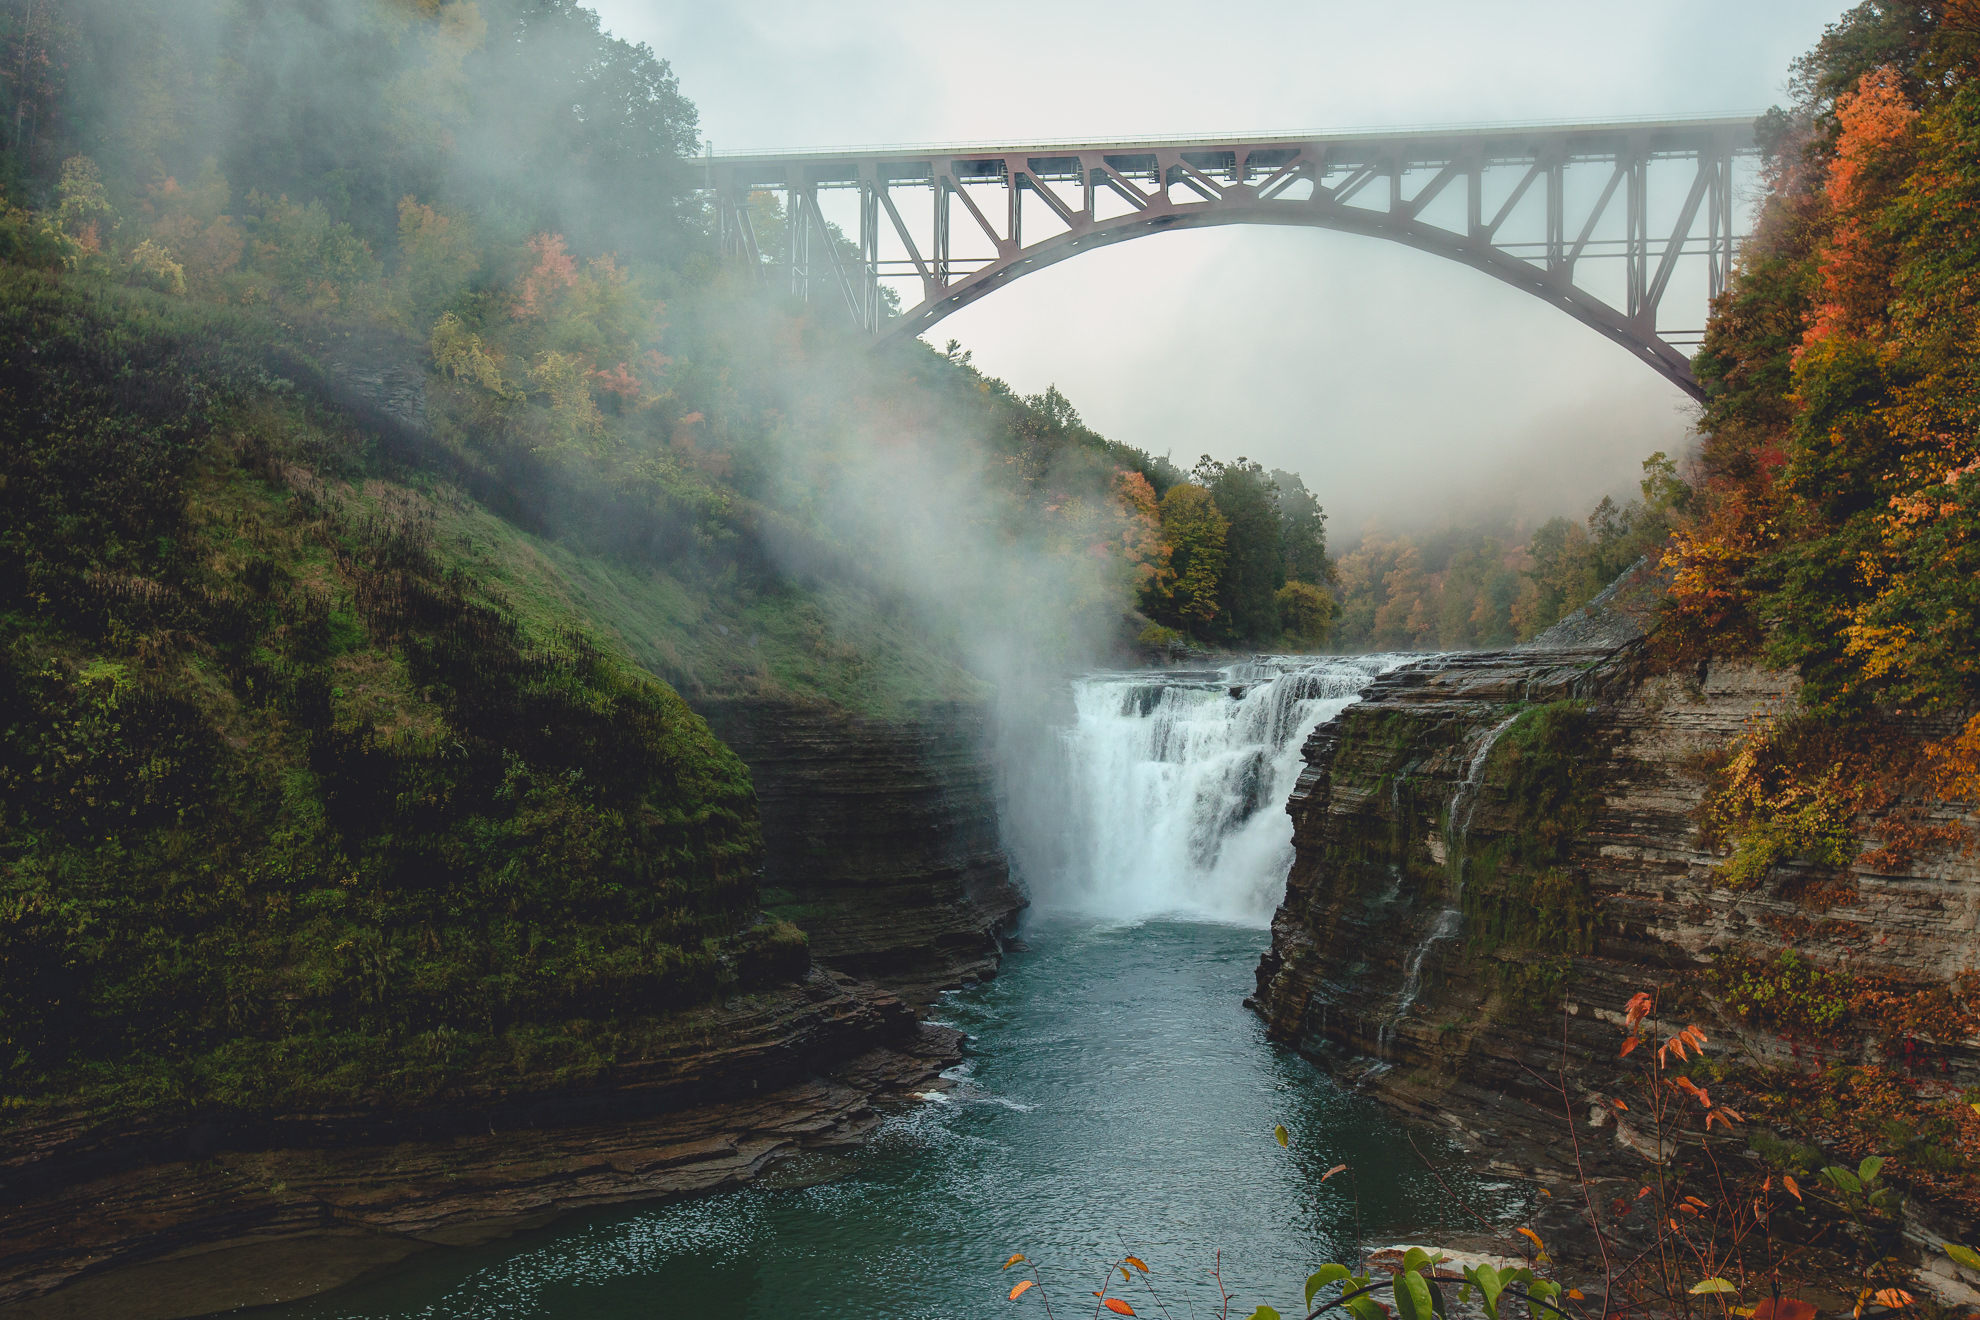 upper falls with fog during wedding engagement proposal photography session in Letchworth State Park